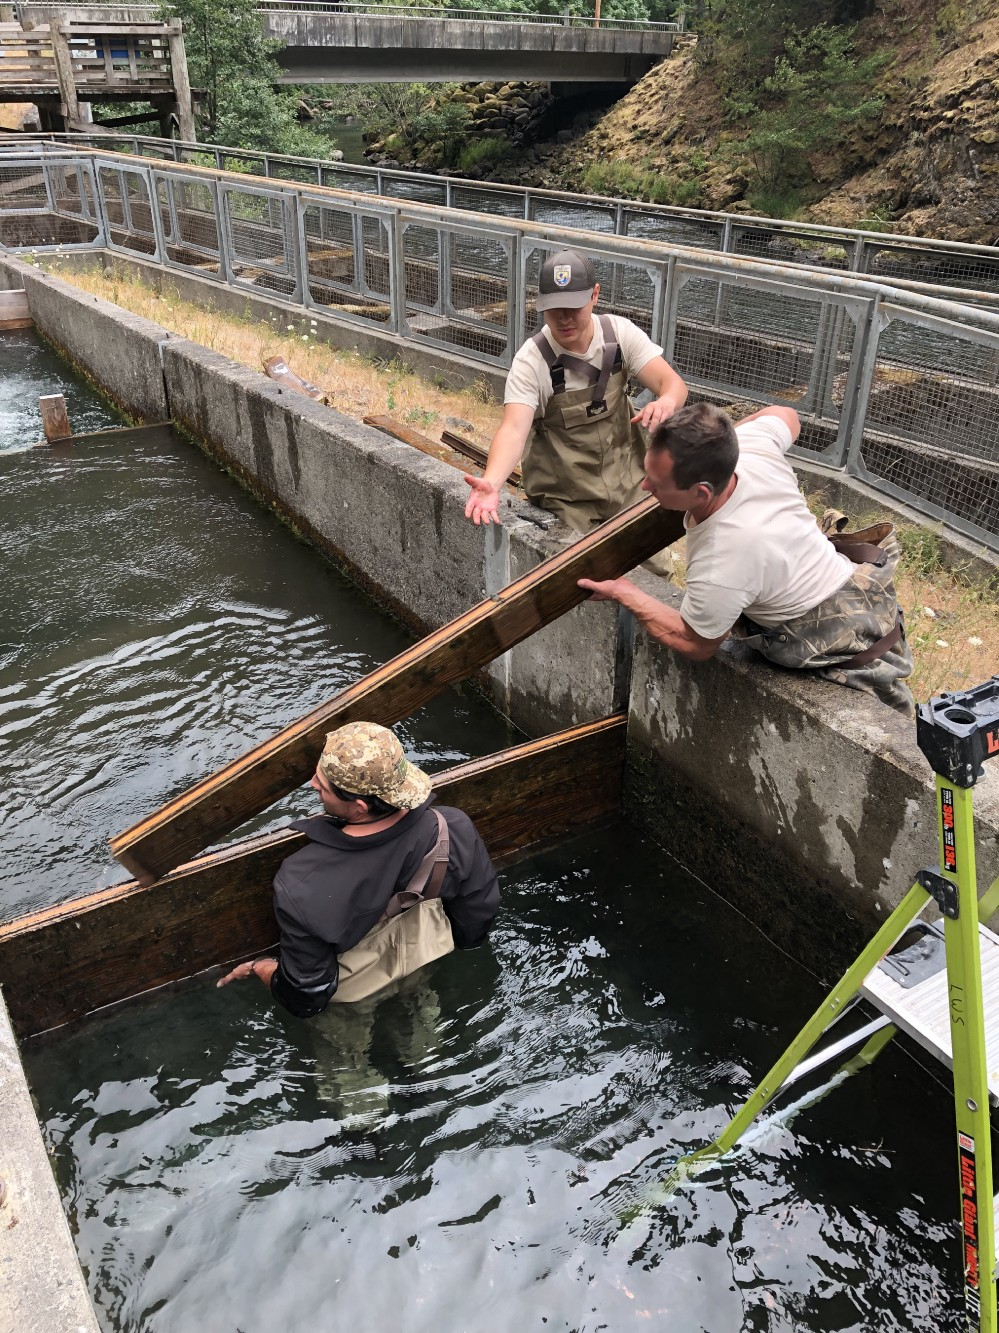 U.S. Fish and Wildlife Service staff remove the boards that kept fish from entering the fish ladder at Little White Salmon NFH. Photo by Cheri Anderson / USFWS